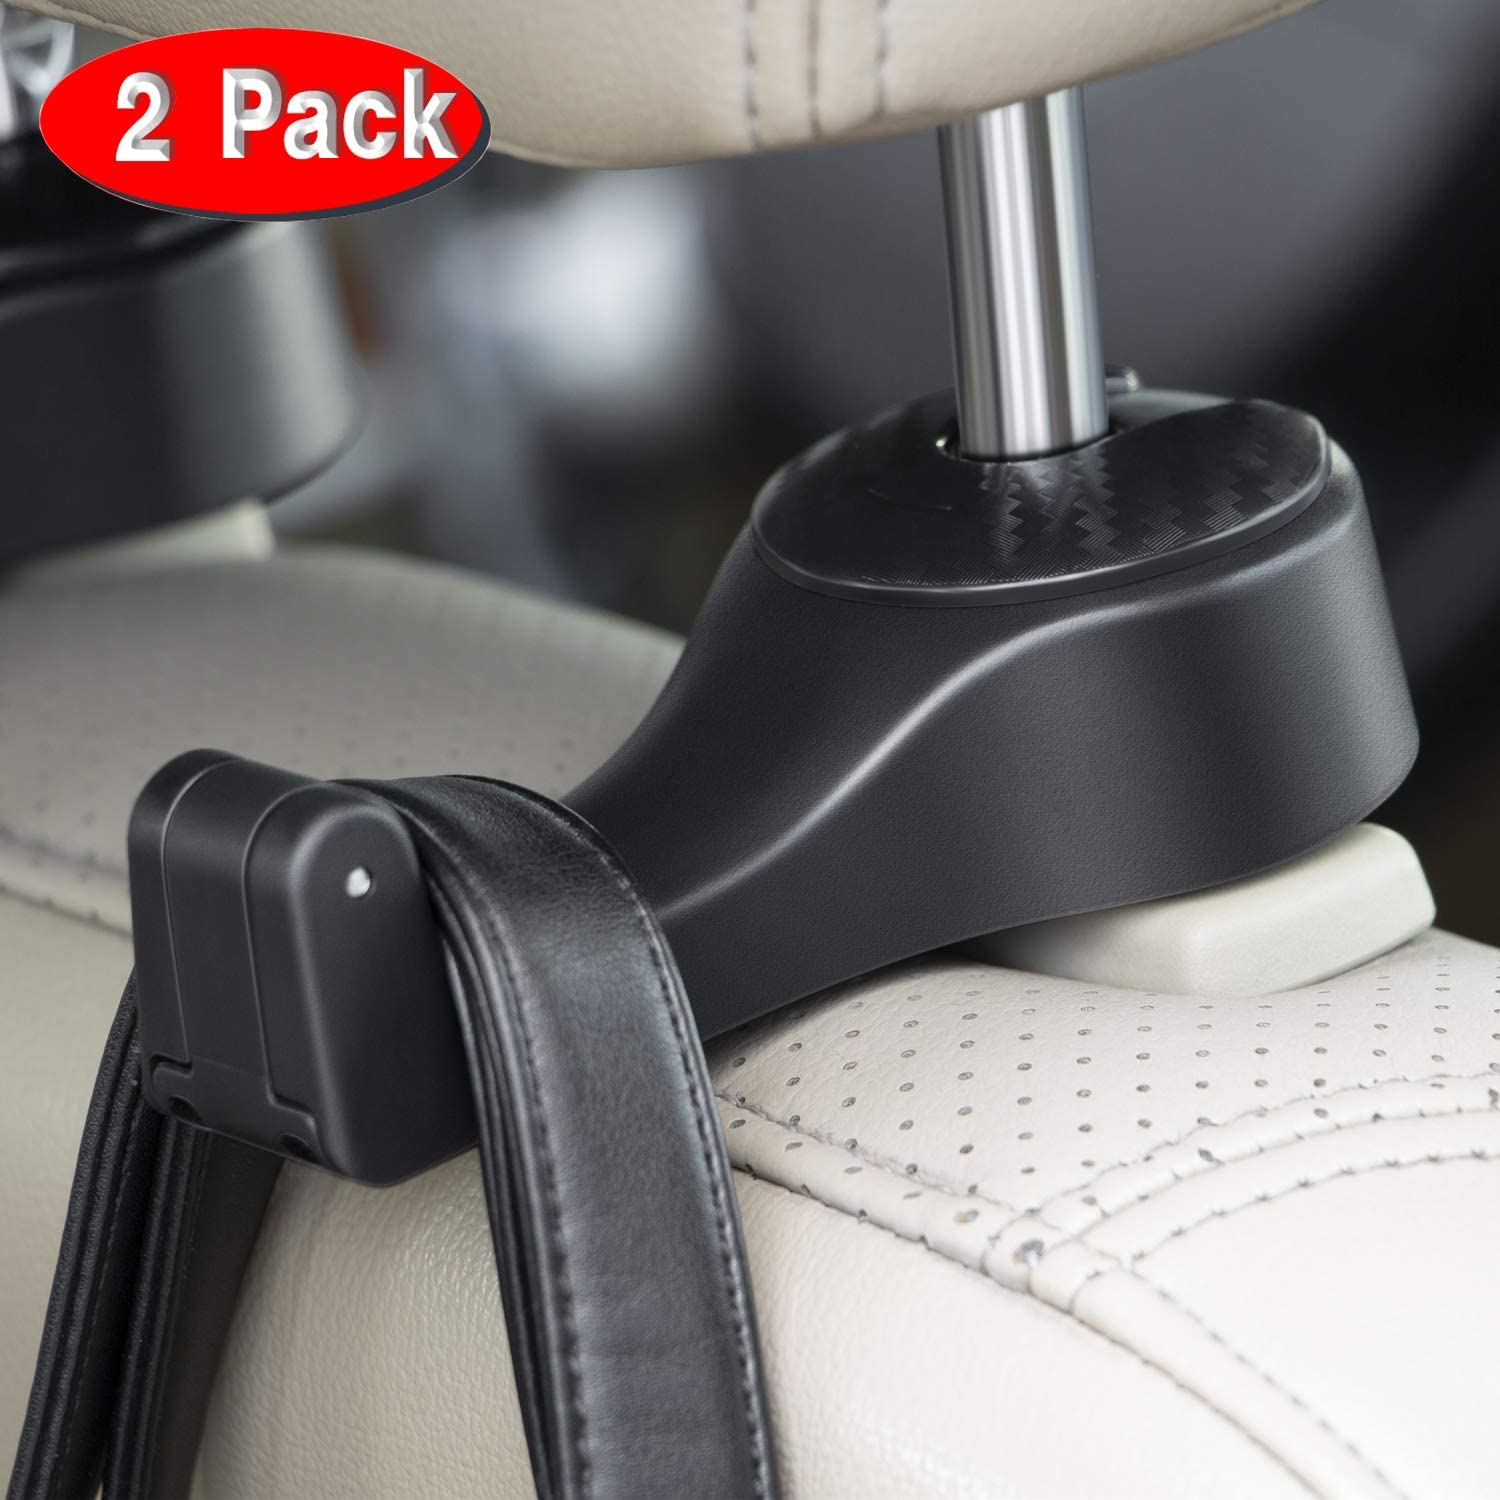 Pack of 2 Donia Leather Car Hooks for Purses and Bags Car Vehicle Back Seat Headrest Hanger Holder Hook Microfiber Leather /& Stainless Steel